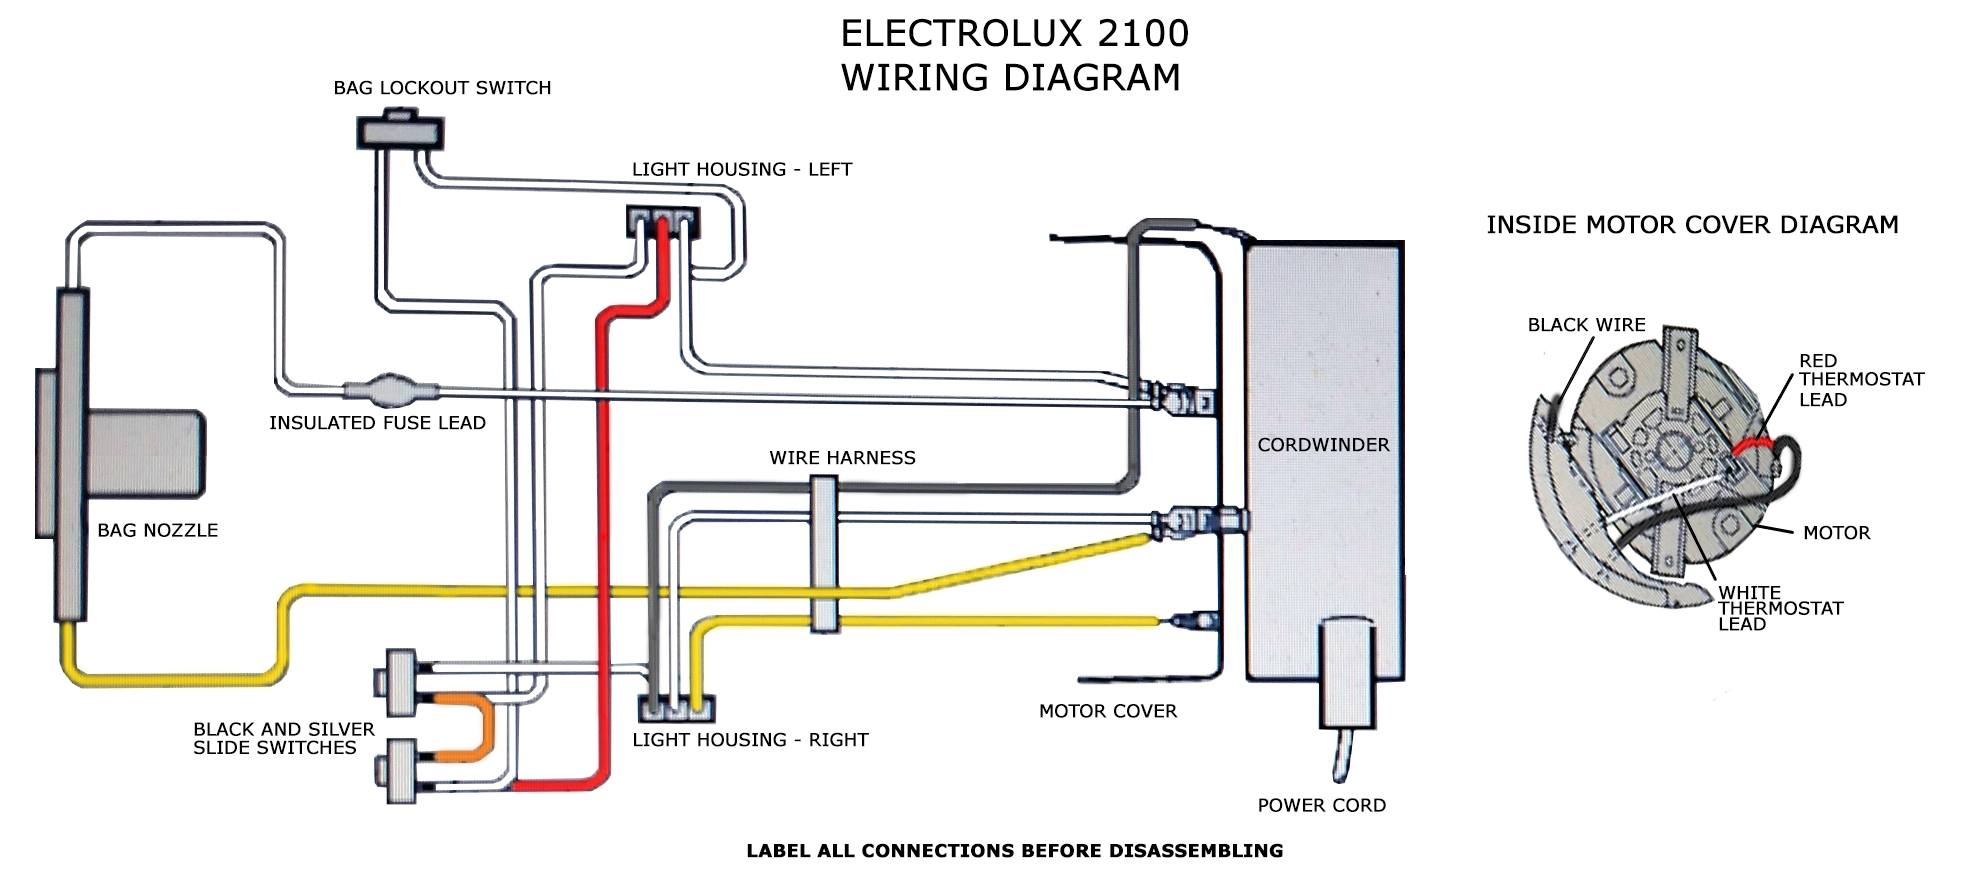 2100 wiring diagram miele vacuum wiring diagram osram wiring diagram \u2022 wiring diagram geyser wiring diagram at crackthecode.co